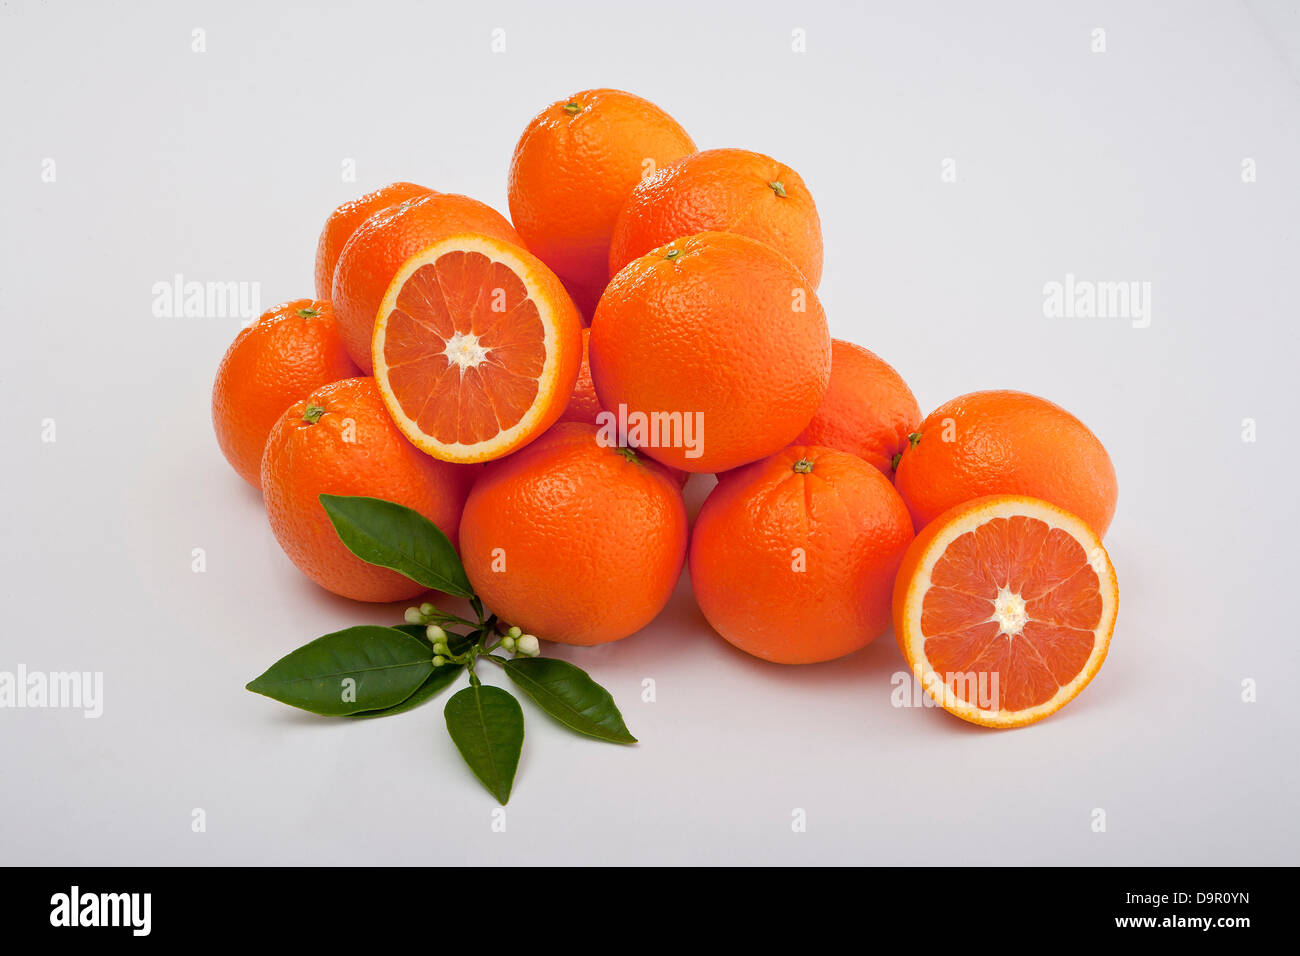 group of Mineola tangelos whole sections and cut with fresh leaves - Stock Image